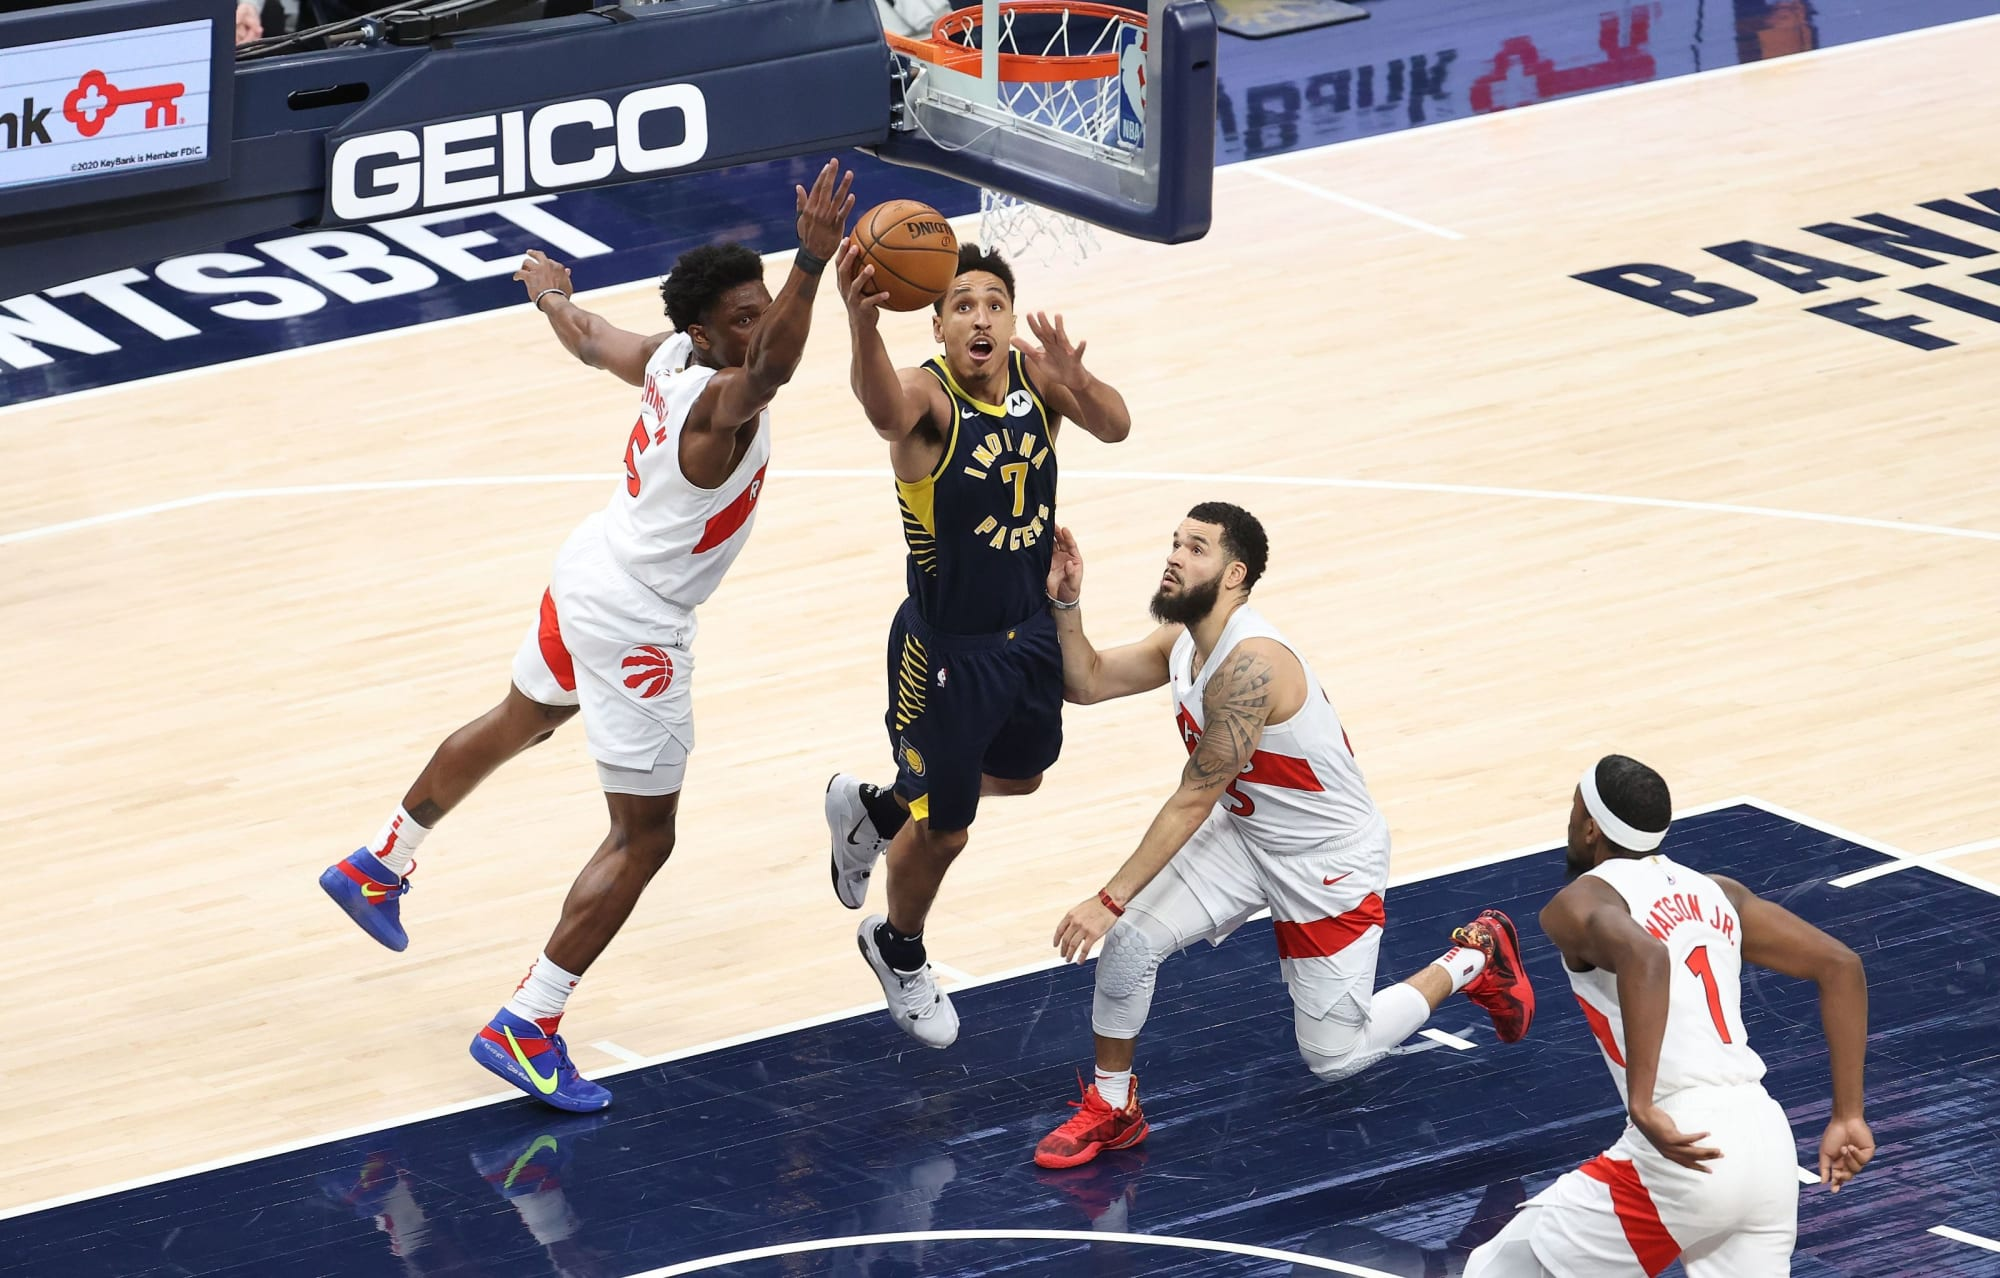 Key takeaways from the Toronto Raptors loss against the Pacers